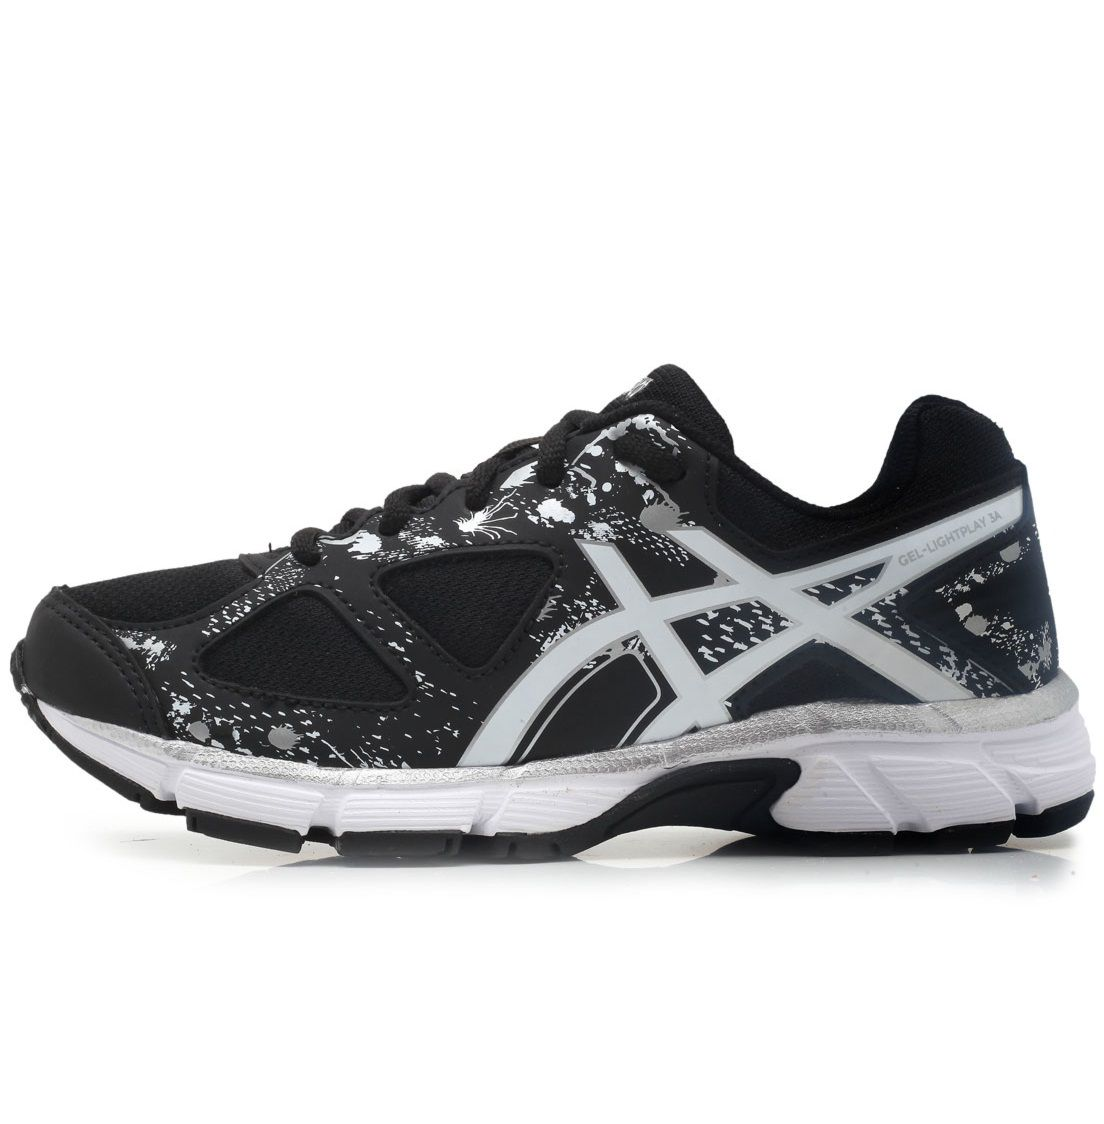 631d68917de Tenis Asics Gel Light Play 3 Gs Infantil - SPORT CENTER JARAGUÁ